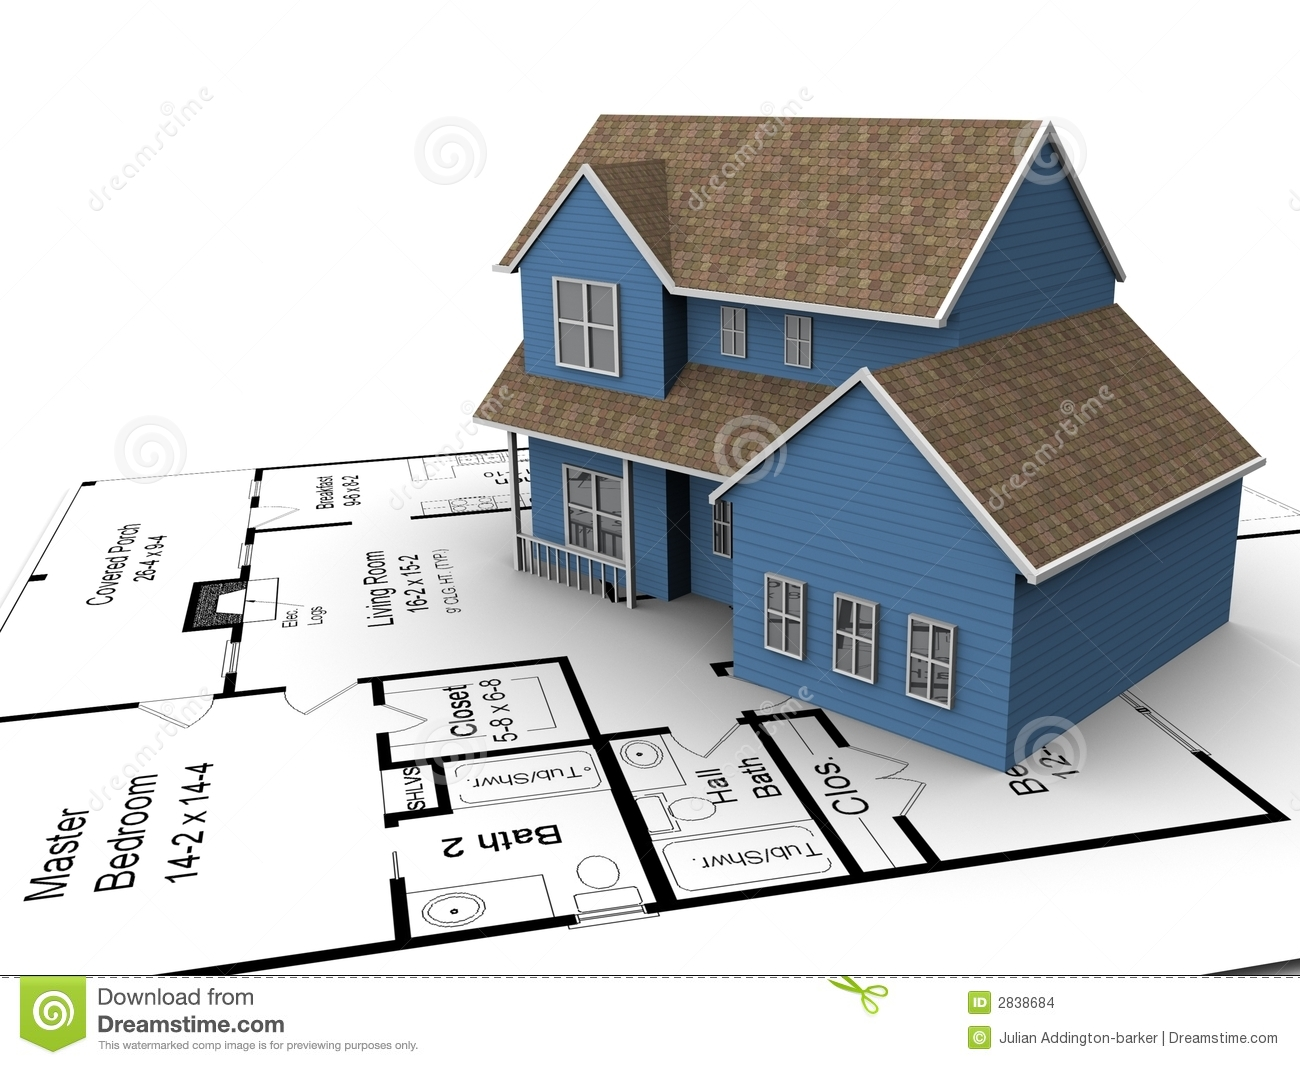 House plan clipart Modern home construction